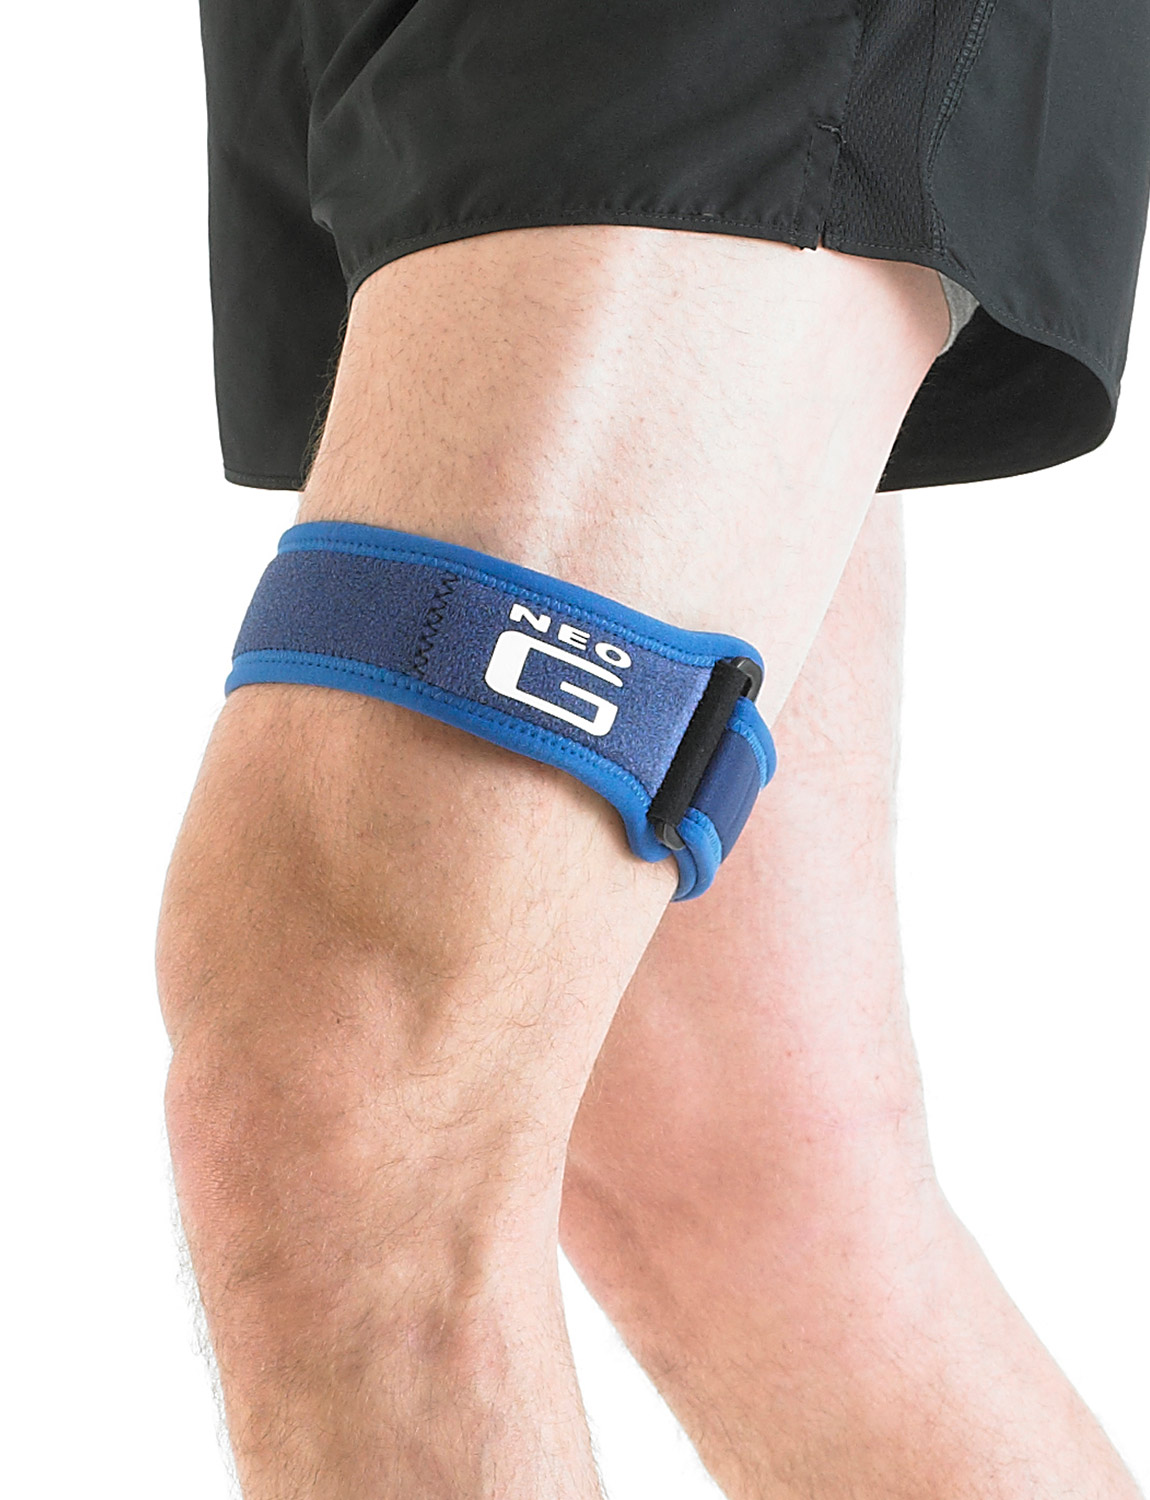 876 - ITB STRAP  The ITB strap has been specifically designed to ease the lateral knee pain caused by Iliotibial Band Friction Syndrome (ITBS) commonly found in runners.